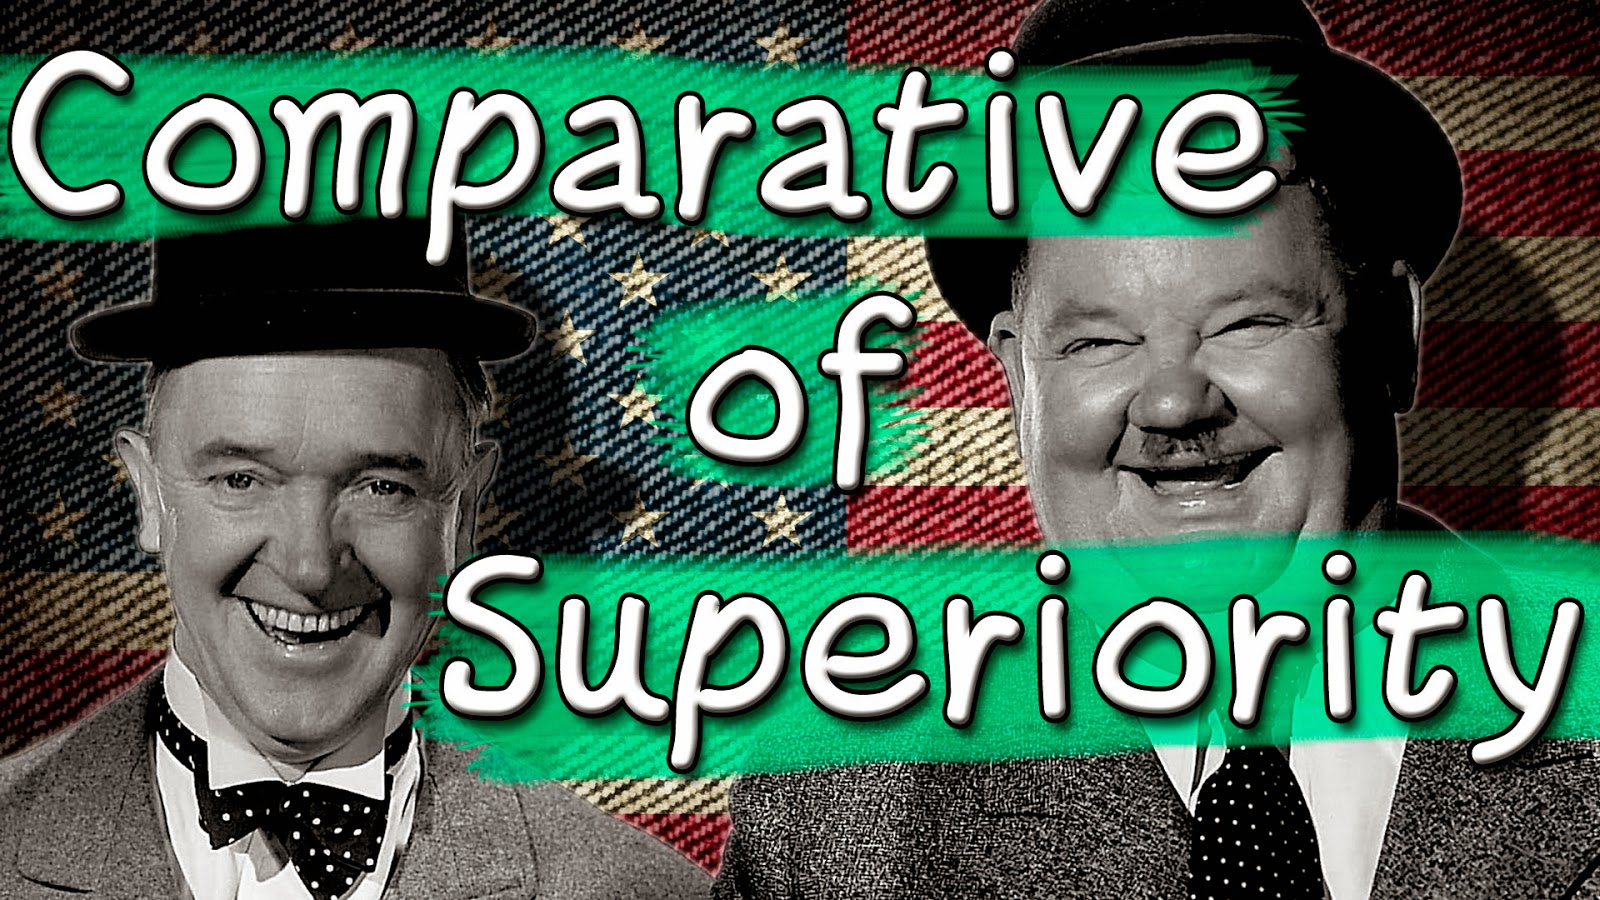 Comparative of Superiority - Comparativo de Superioridade